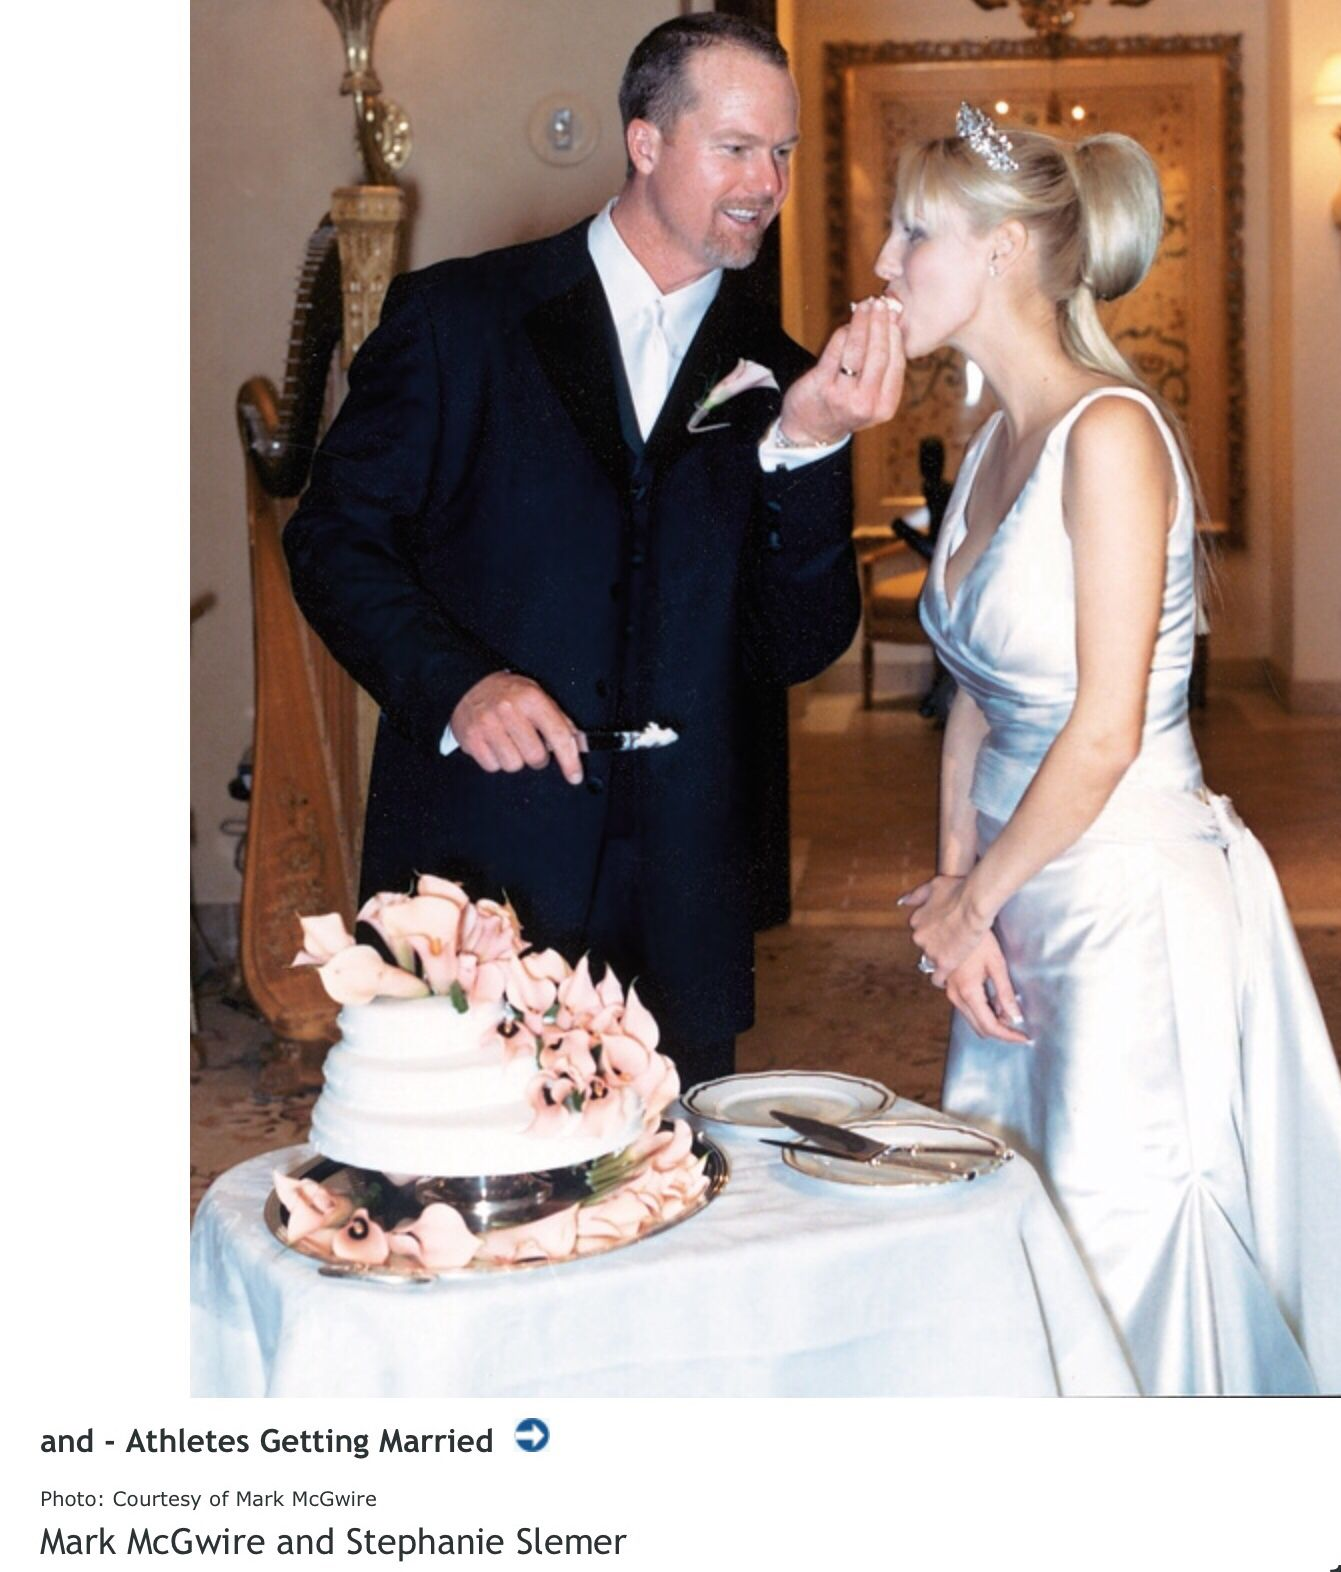 Mark McGwire and Stephanie Slemer married 2002